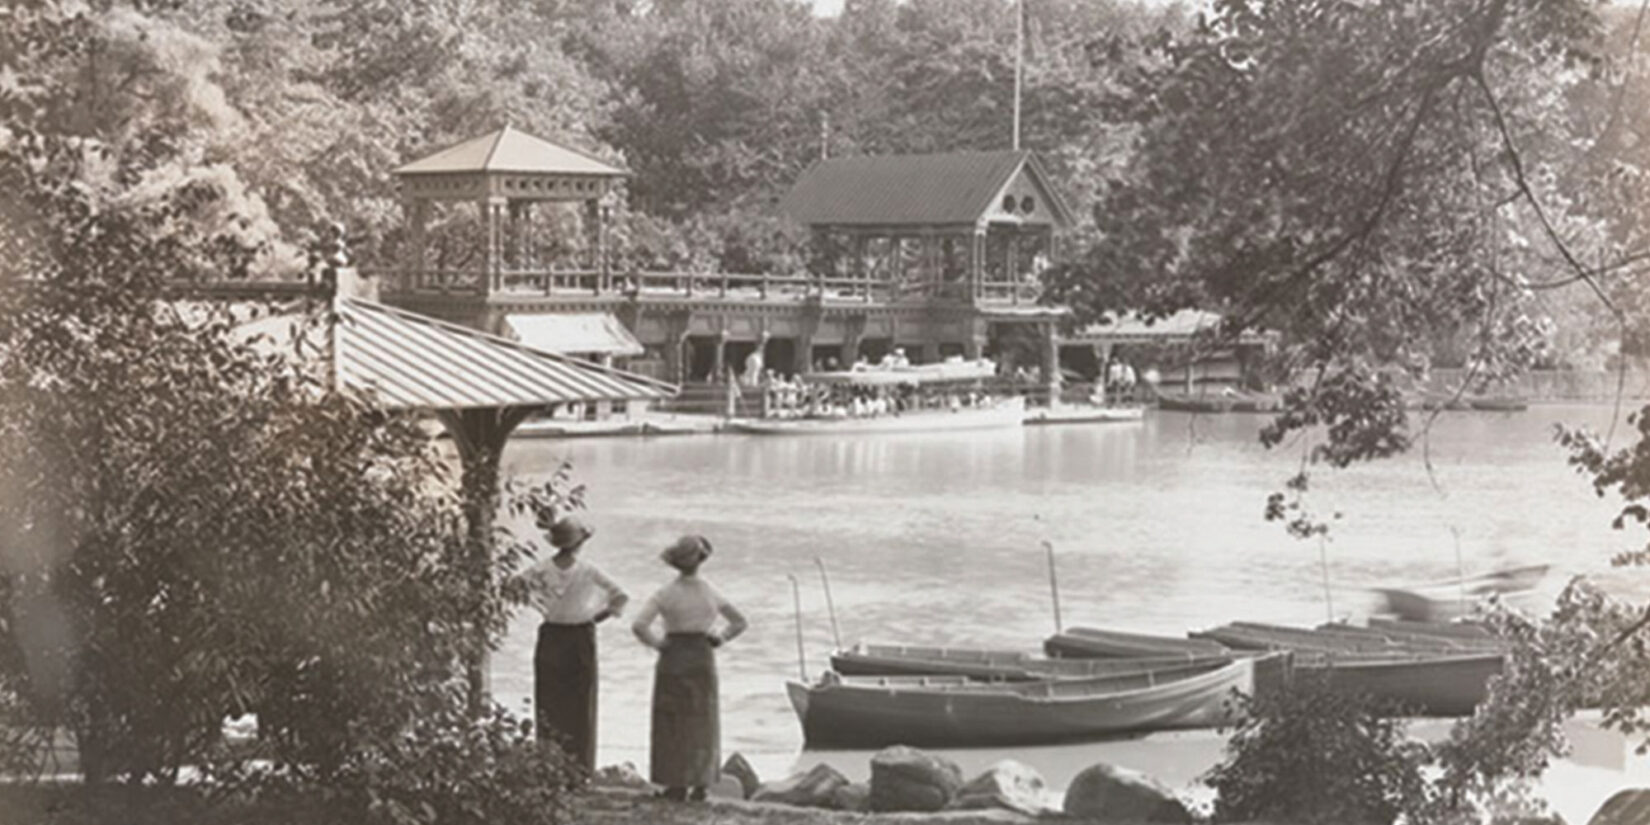 Contemporary photo showing 2 women on the shore of the Lake, with rustic structures in the foreground and background